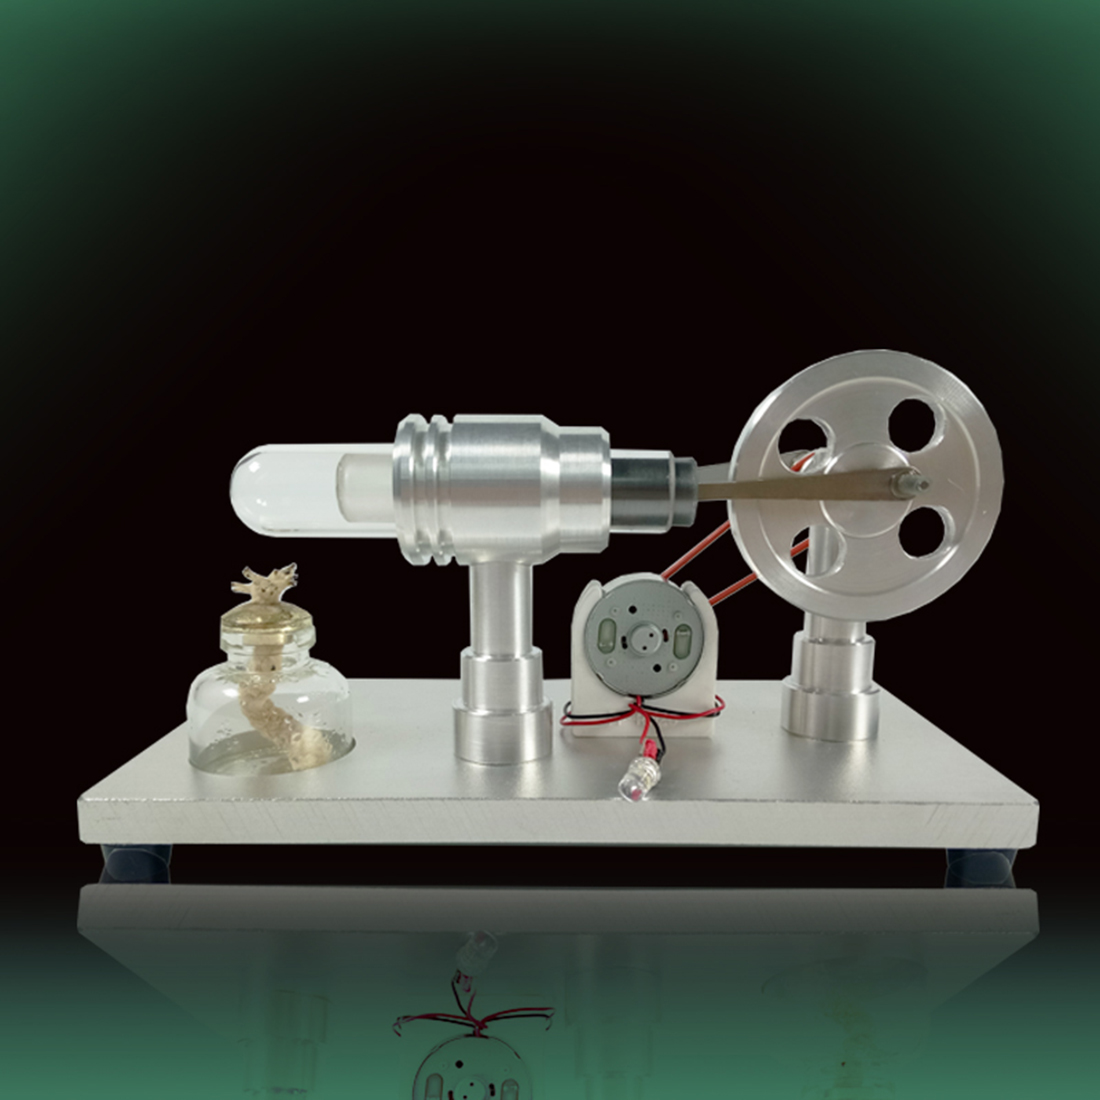 Metal Baseboard Double-cylinder Micro DIY Stirling Engine External Combustion Engine metal cylinder bootable stirling engine model micro external combustion engine model peacock blue baseboard toys for kids